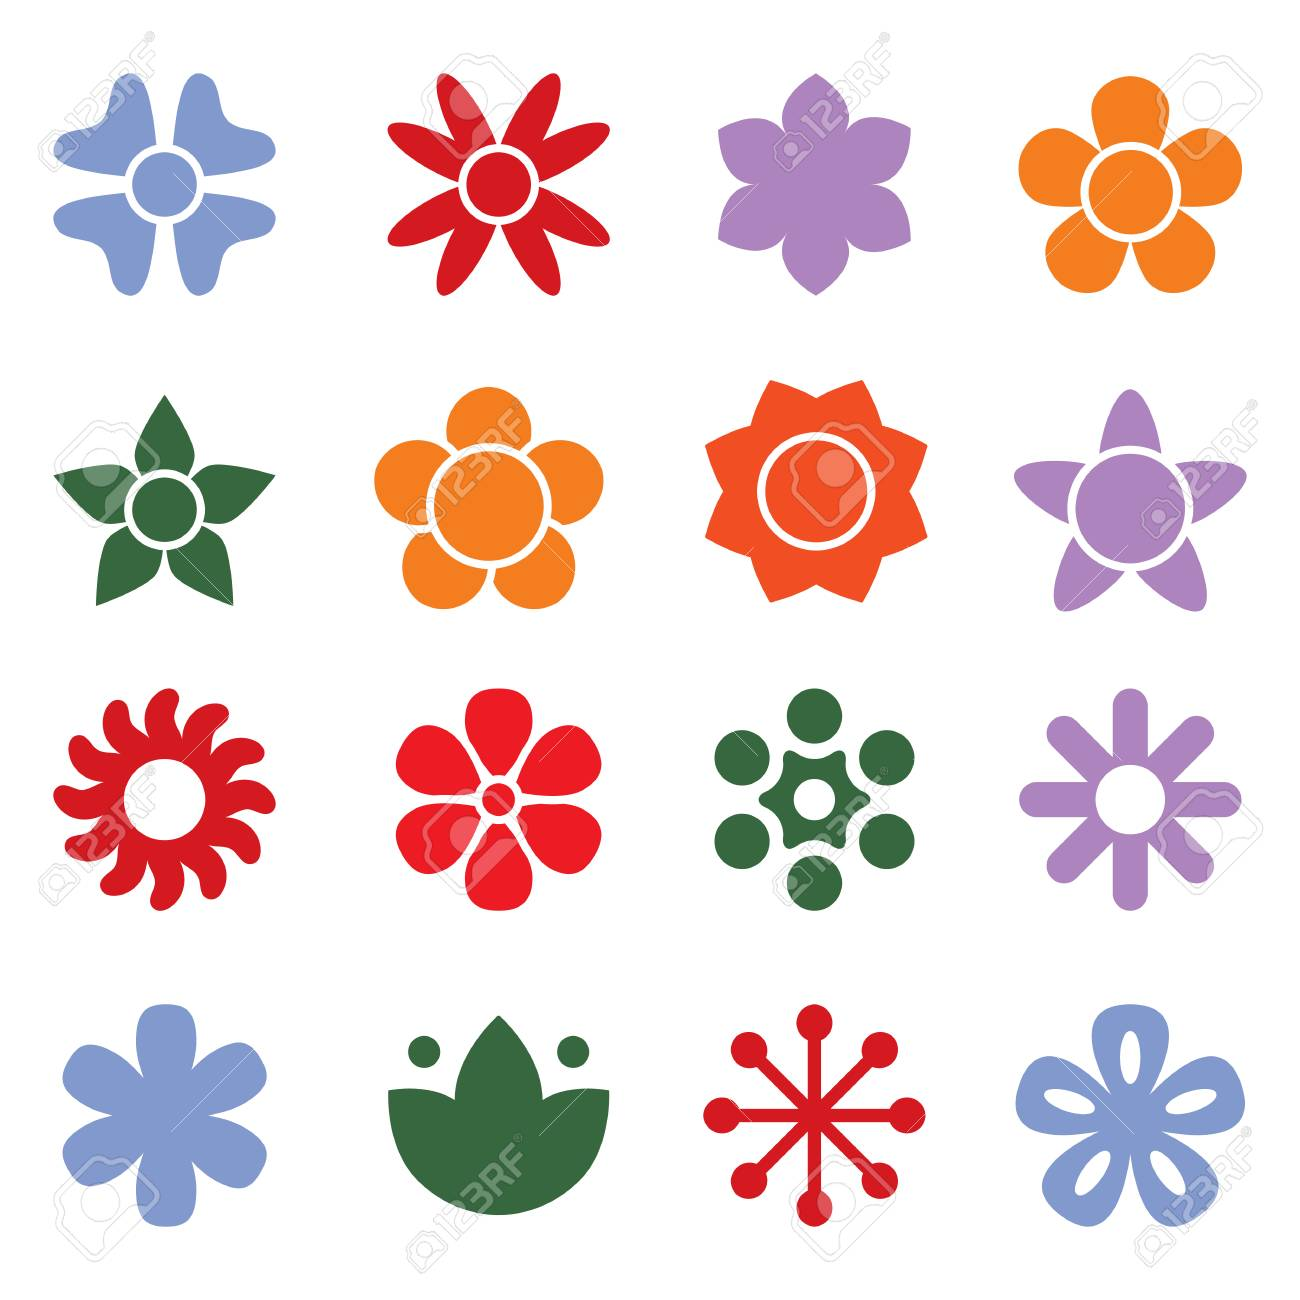 flower icon collection in flat style daisy symbol or logo template